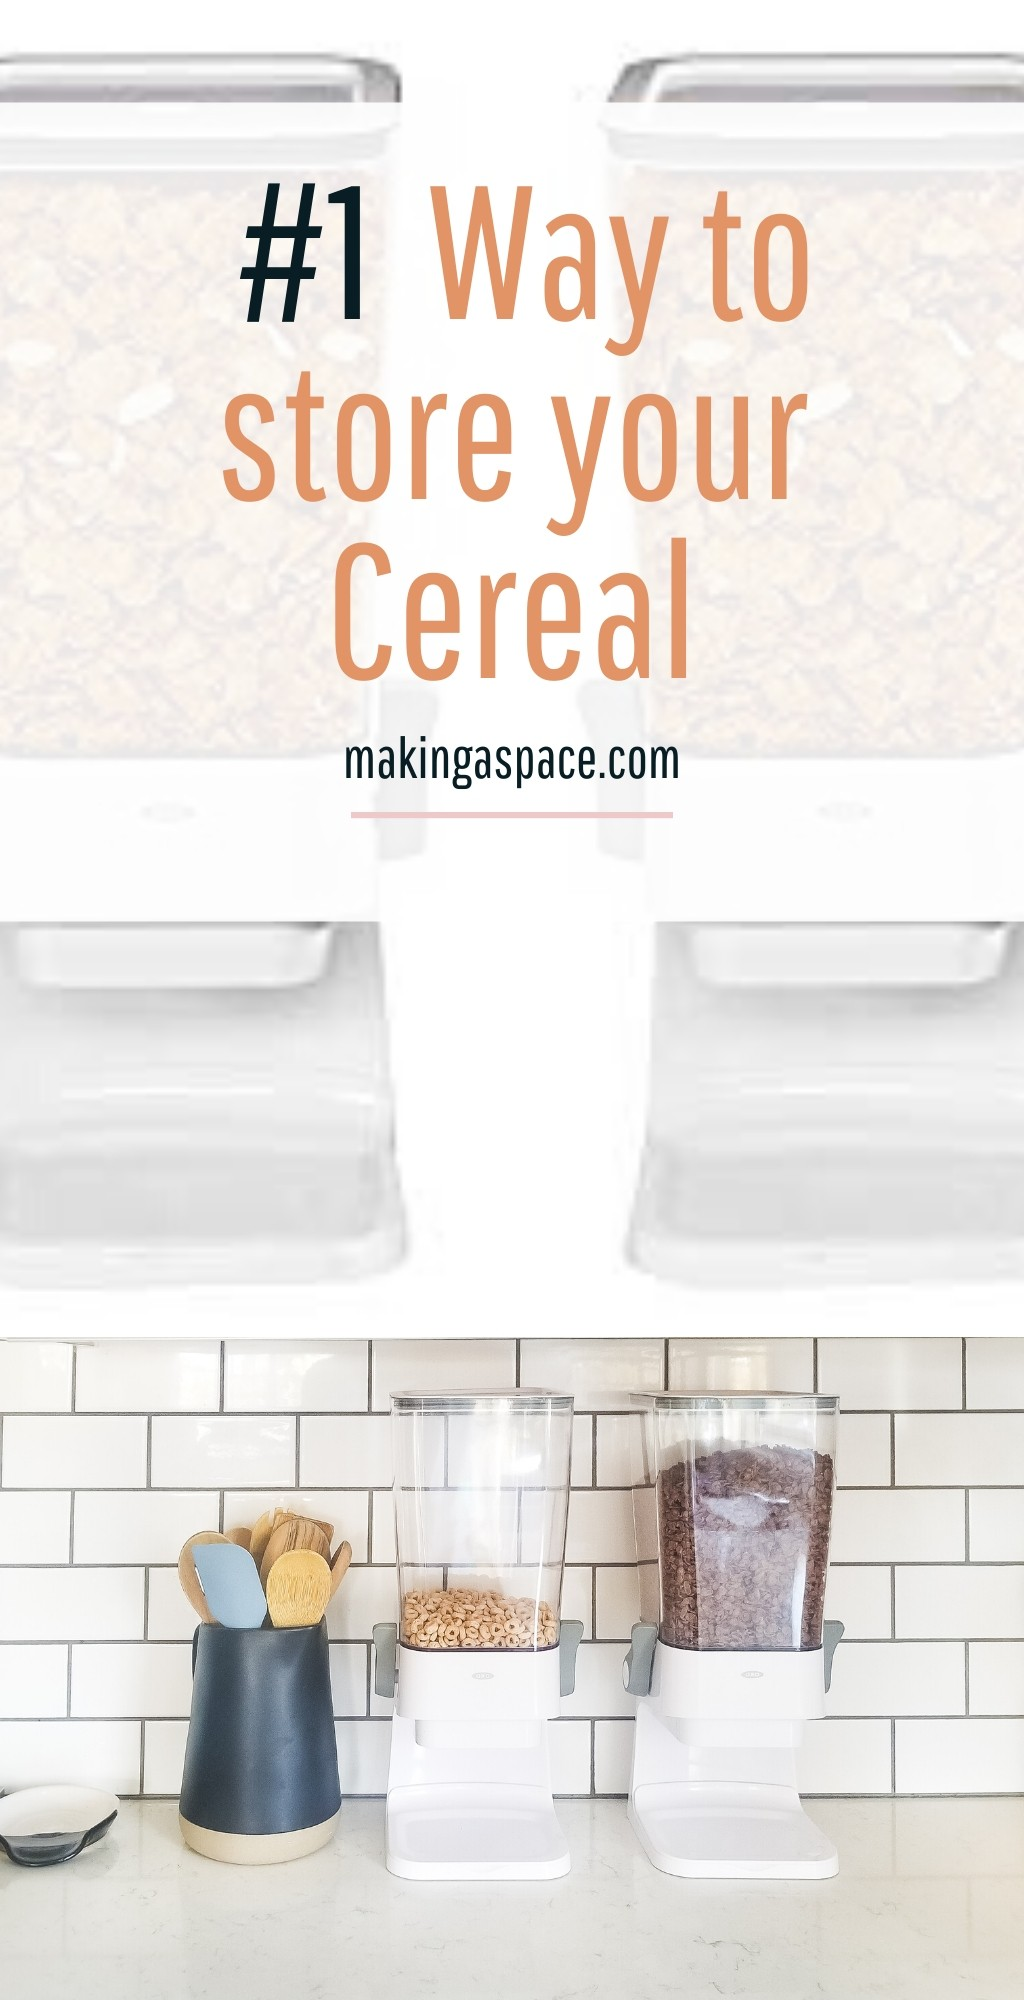 Countertop cereal dispenser